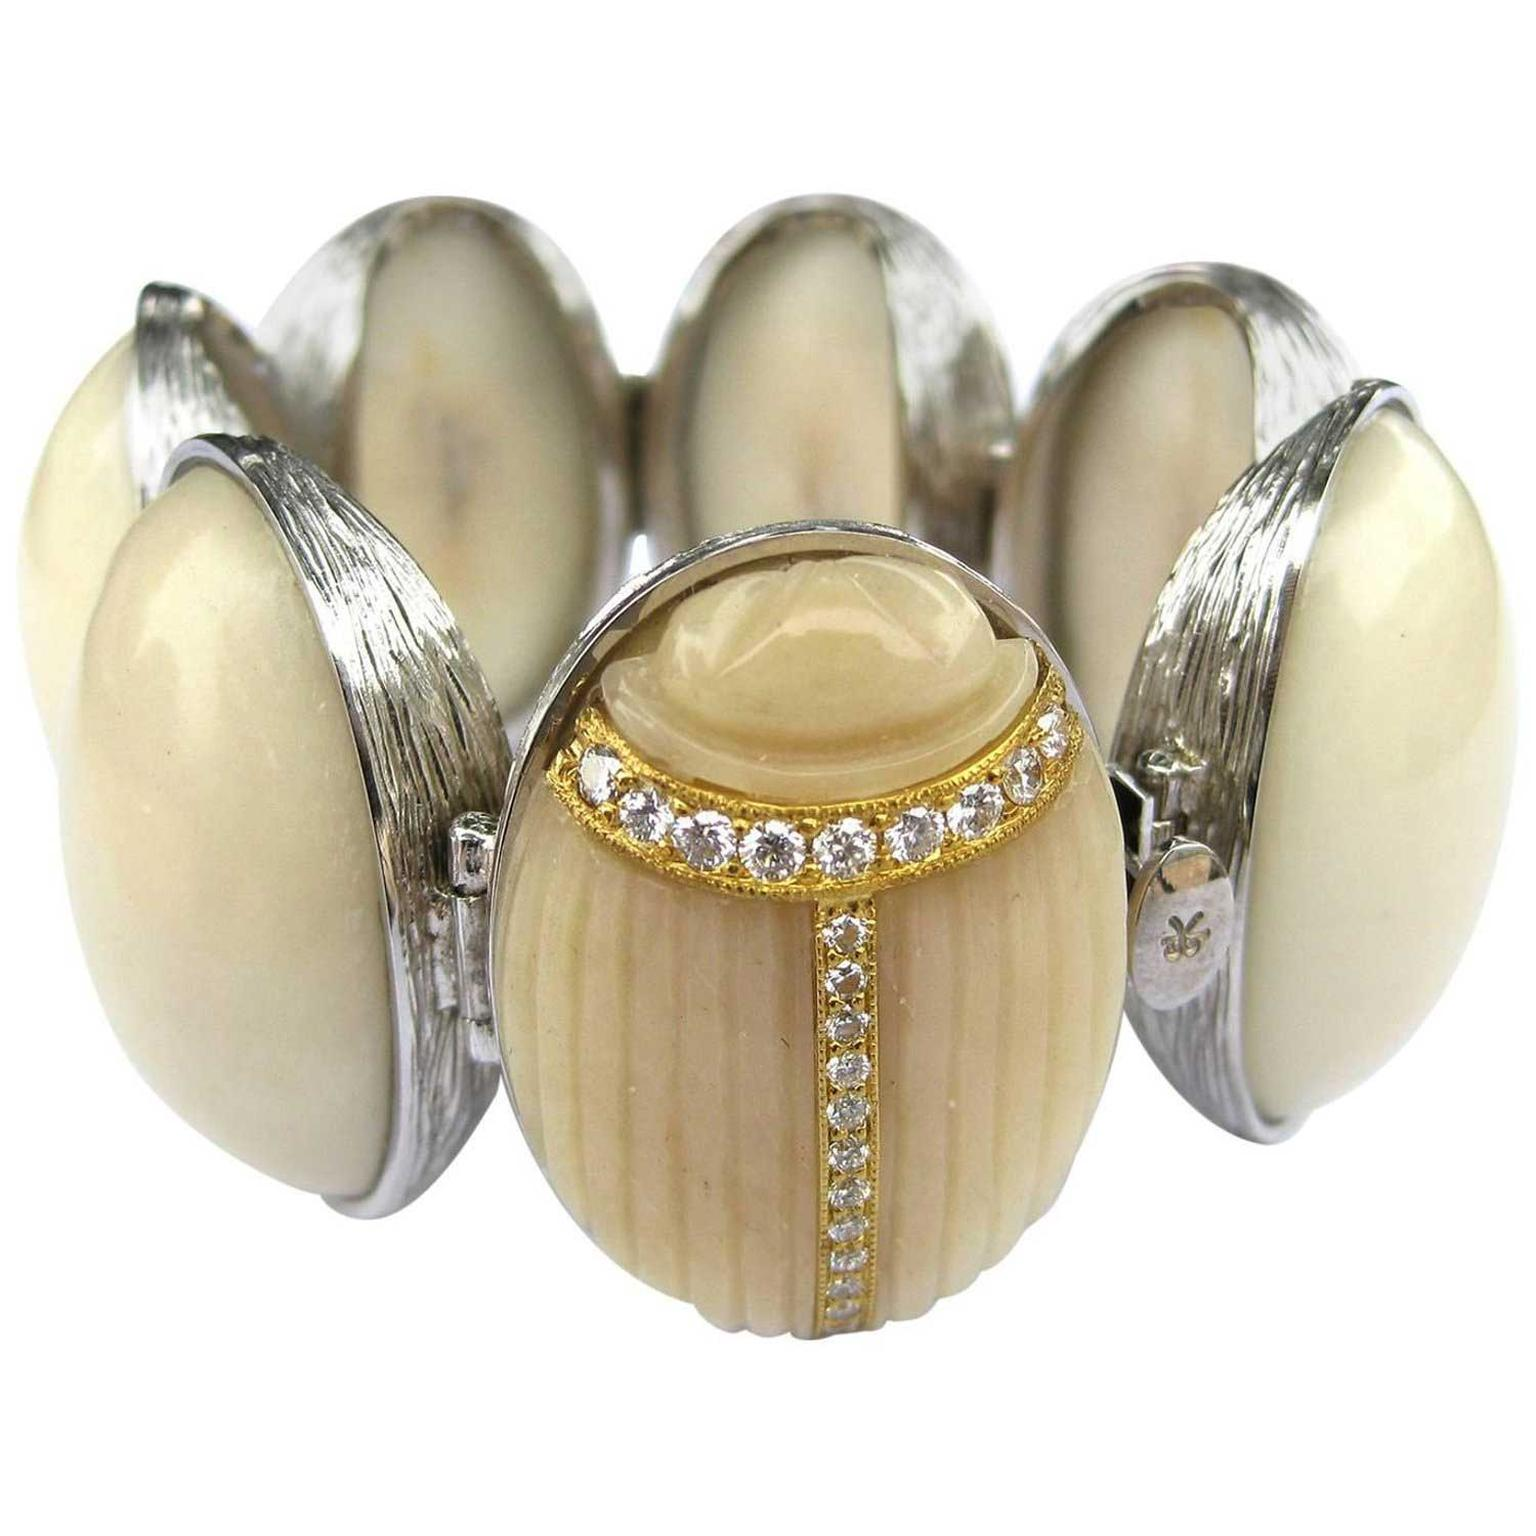 K Brunini Jewels carved Tagua nut scarab bracelet